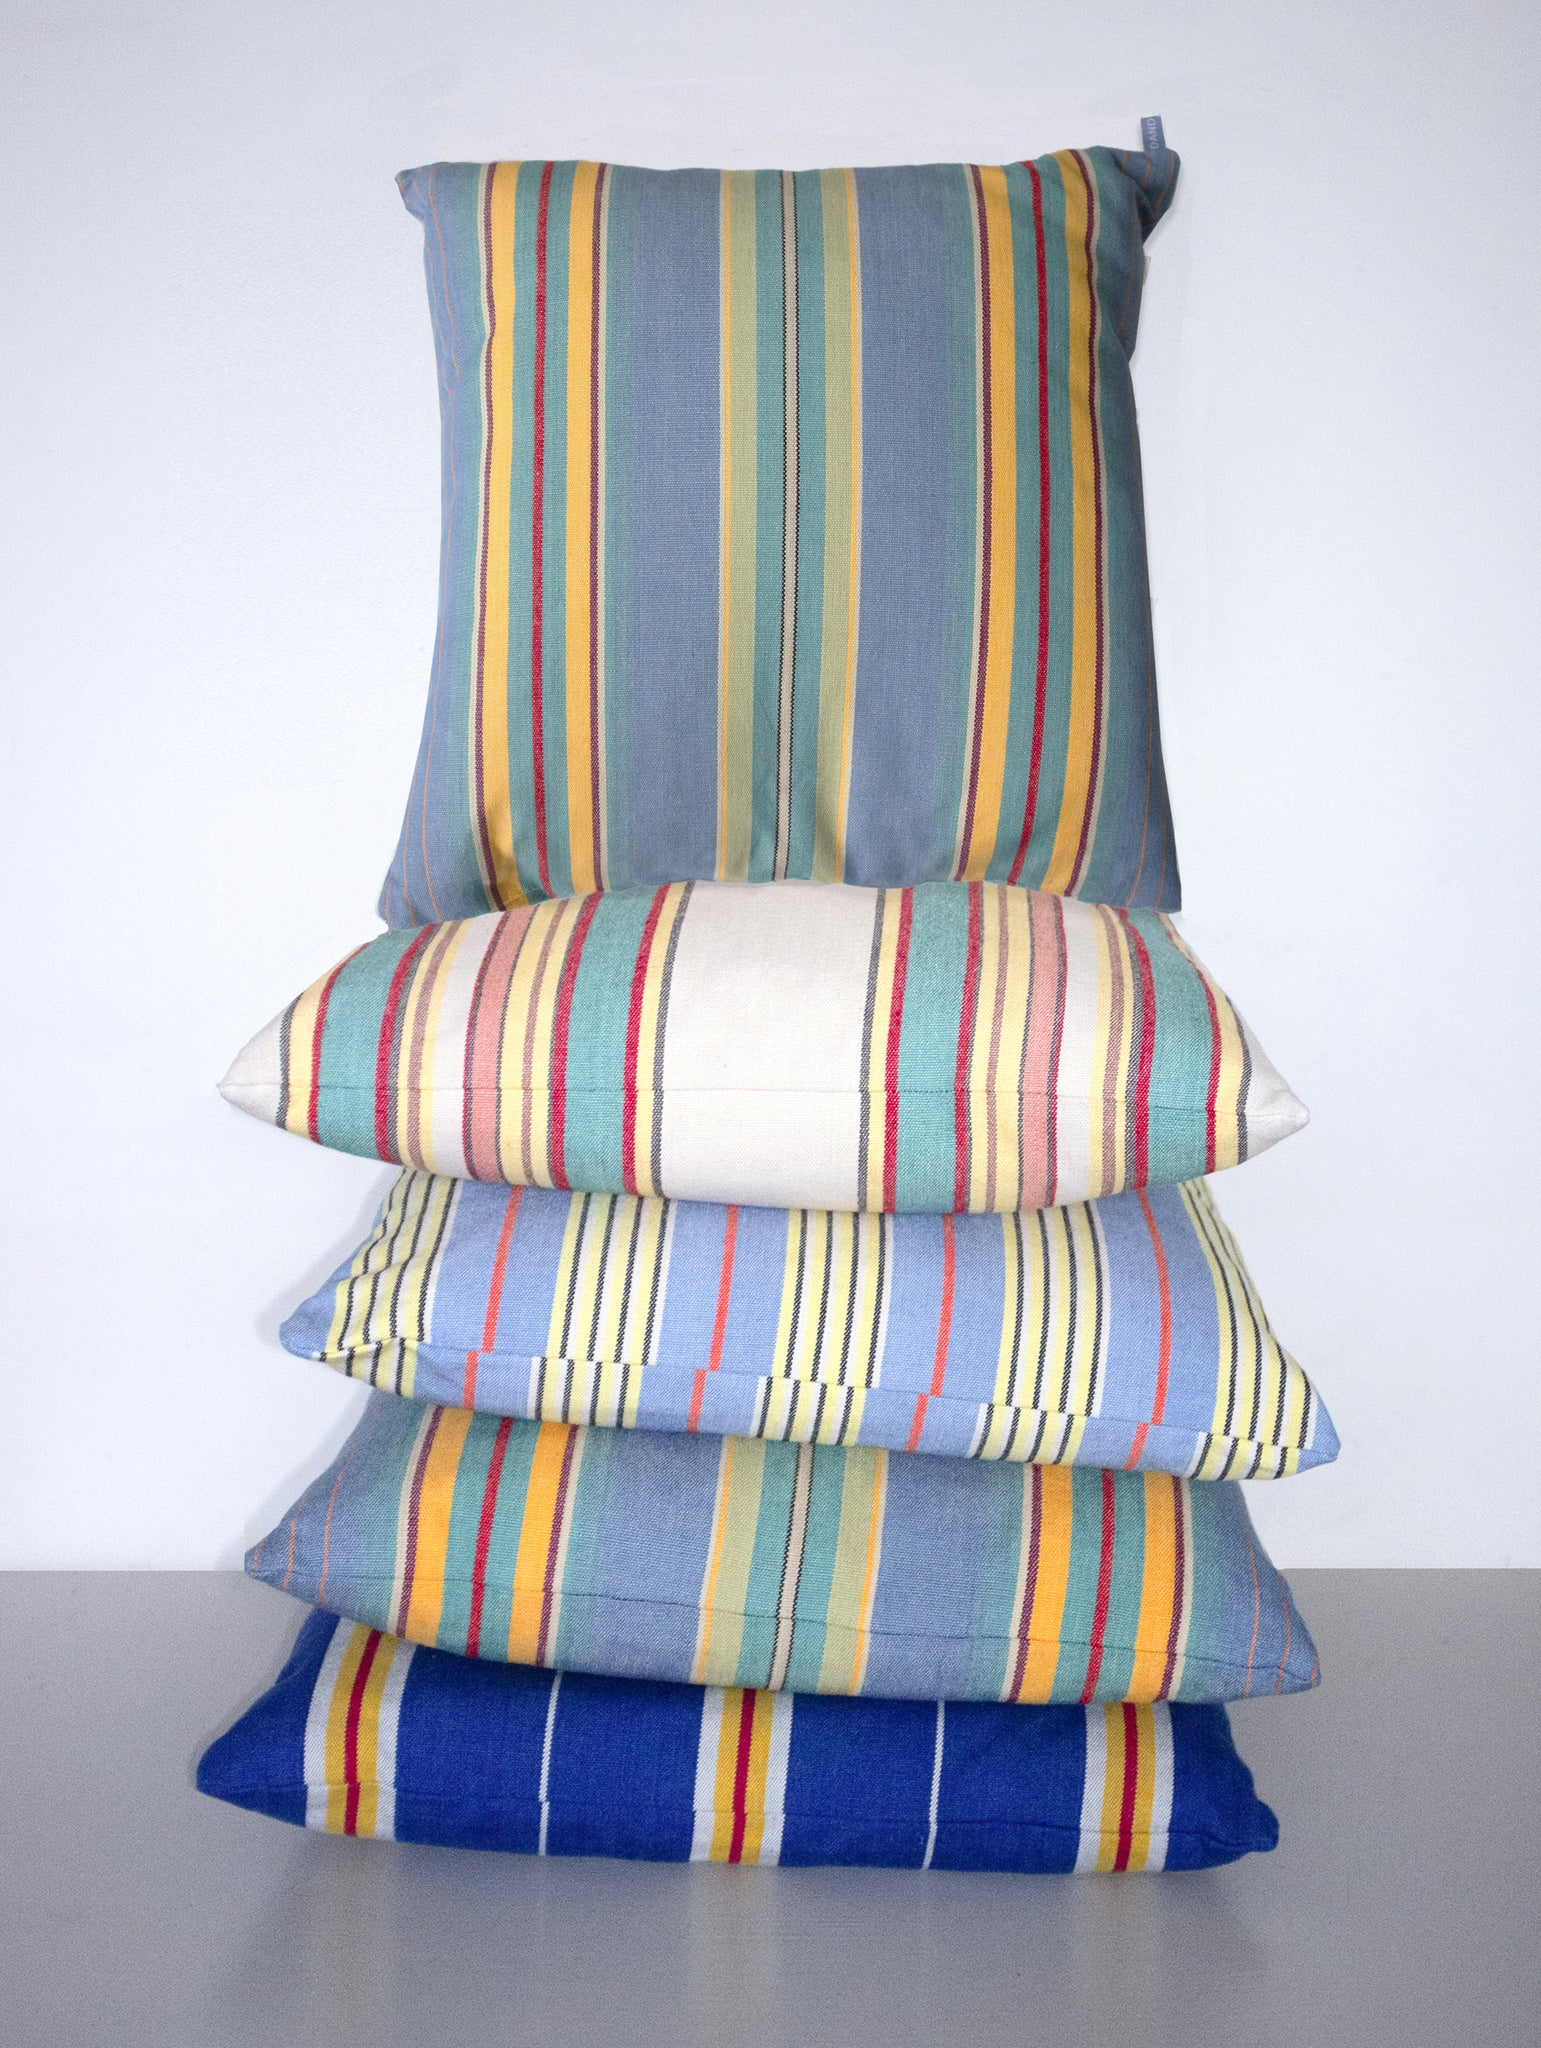 DANDY STAR CUSHION - STRIPE No.5